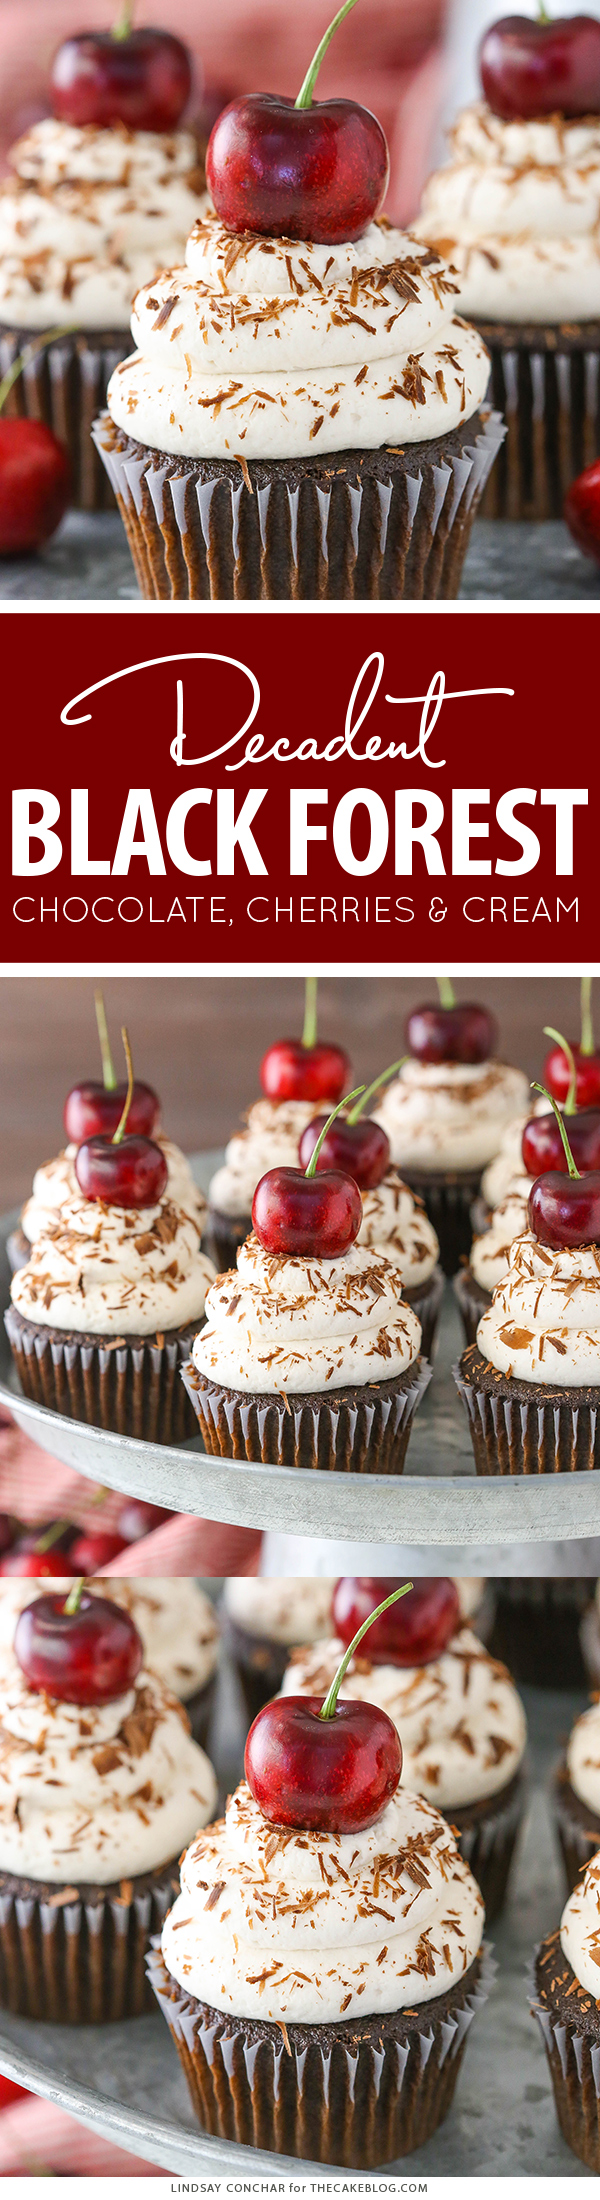 Black Forest Cupcakes - moist chocolate cupcake, homemade cherry filling and fresh vanilla whipped cream on top | by Lindsay Conchar for TheCakeBlog.com